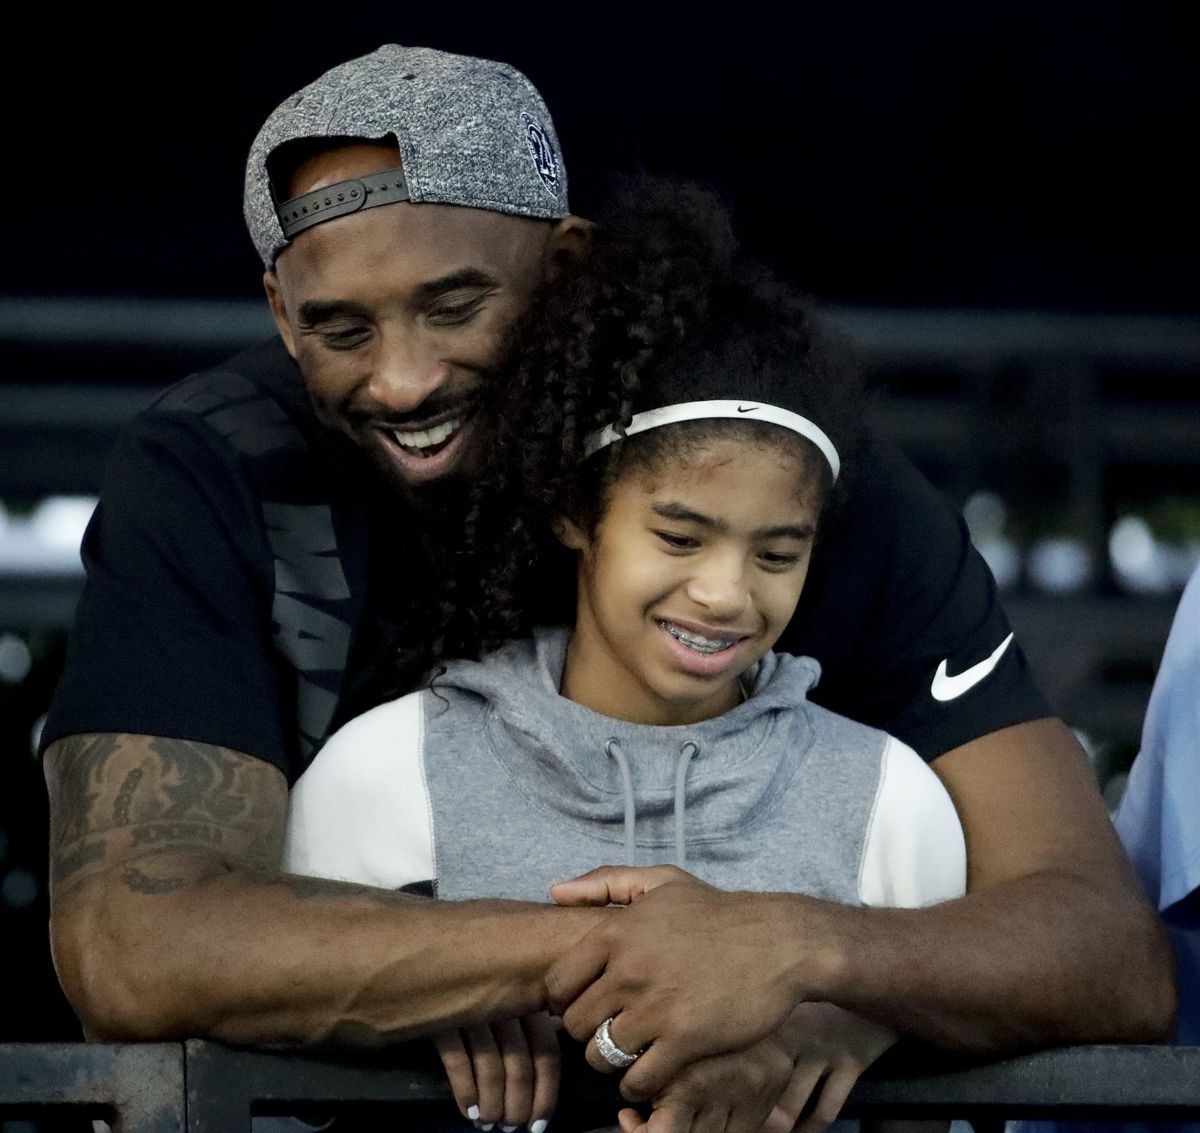 FILE - In this July 26, 2018 file photo former Los Angeles Laker Kobe Bryant and his daughter Gianna watch during the U.S. national championships swimming meet in Irvine, Calif. Bryant, the 18-time NBA All-Star who won five championships and became one of the greatest basketball players of his generation during a 20-year career with the Los Angeles Lakers, died in a helicopter crash Sunday, Jan. 26, 2020. Gianna also died in the crash. She was 13. (AP Photo/Chris Carlson)